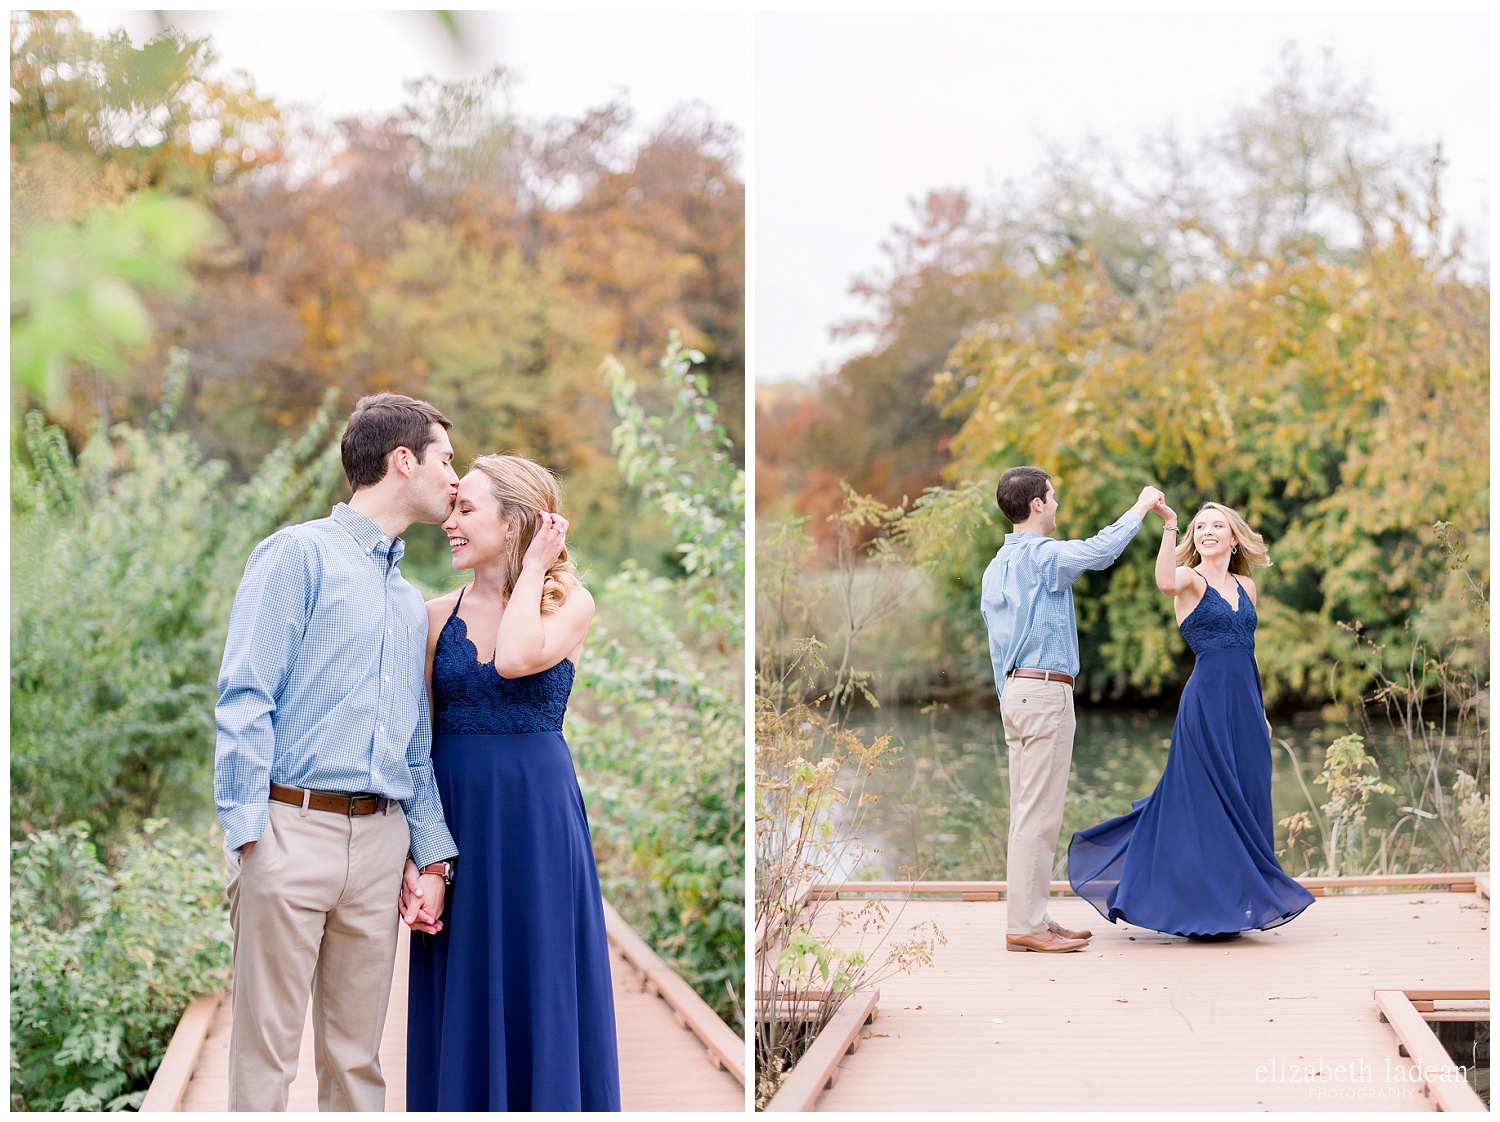 Colorful-Fall-Engagement-Photos-in-KC-C+B-2018-elizabeth-ladean-photography-photo_1806.jpg